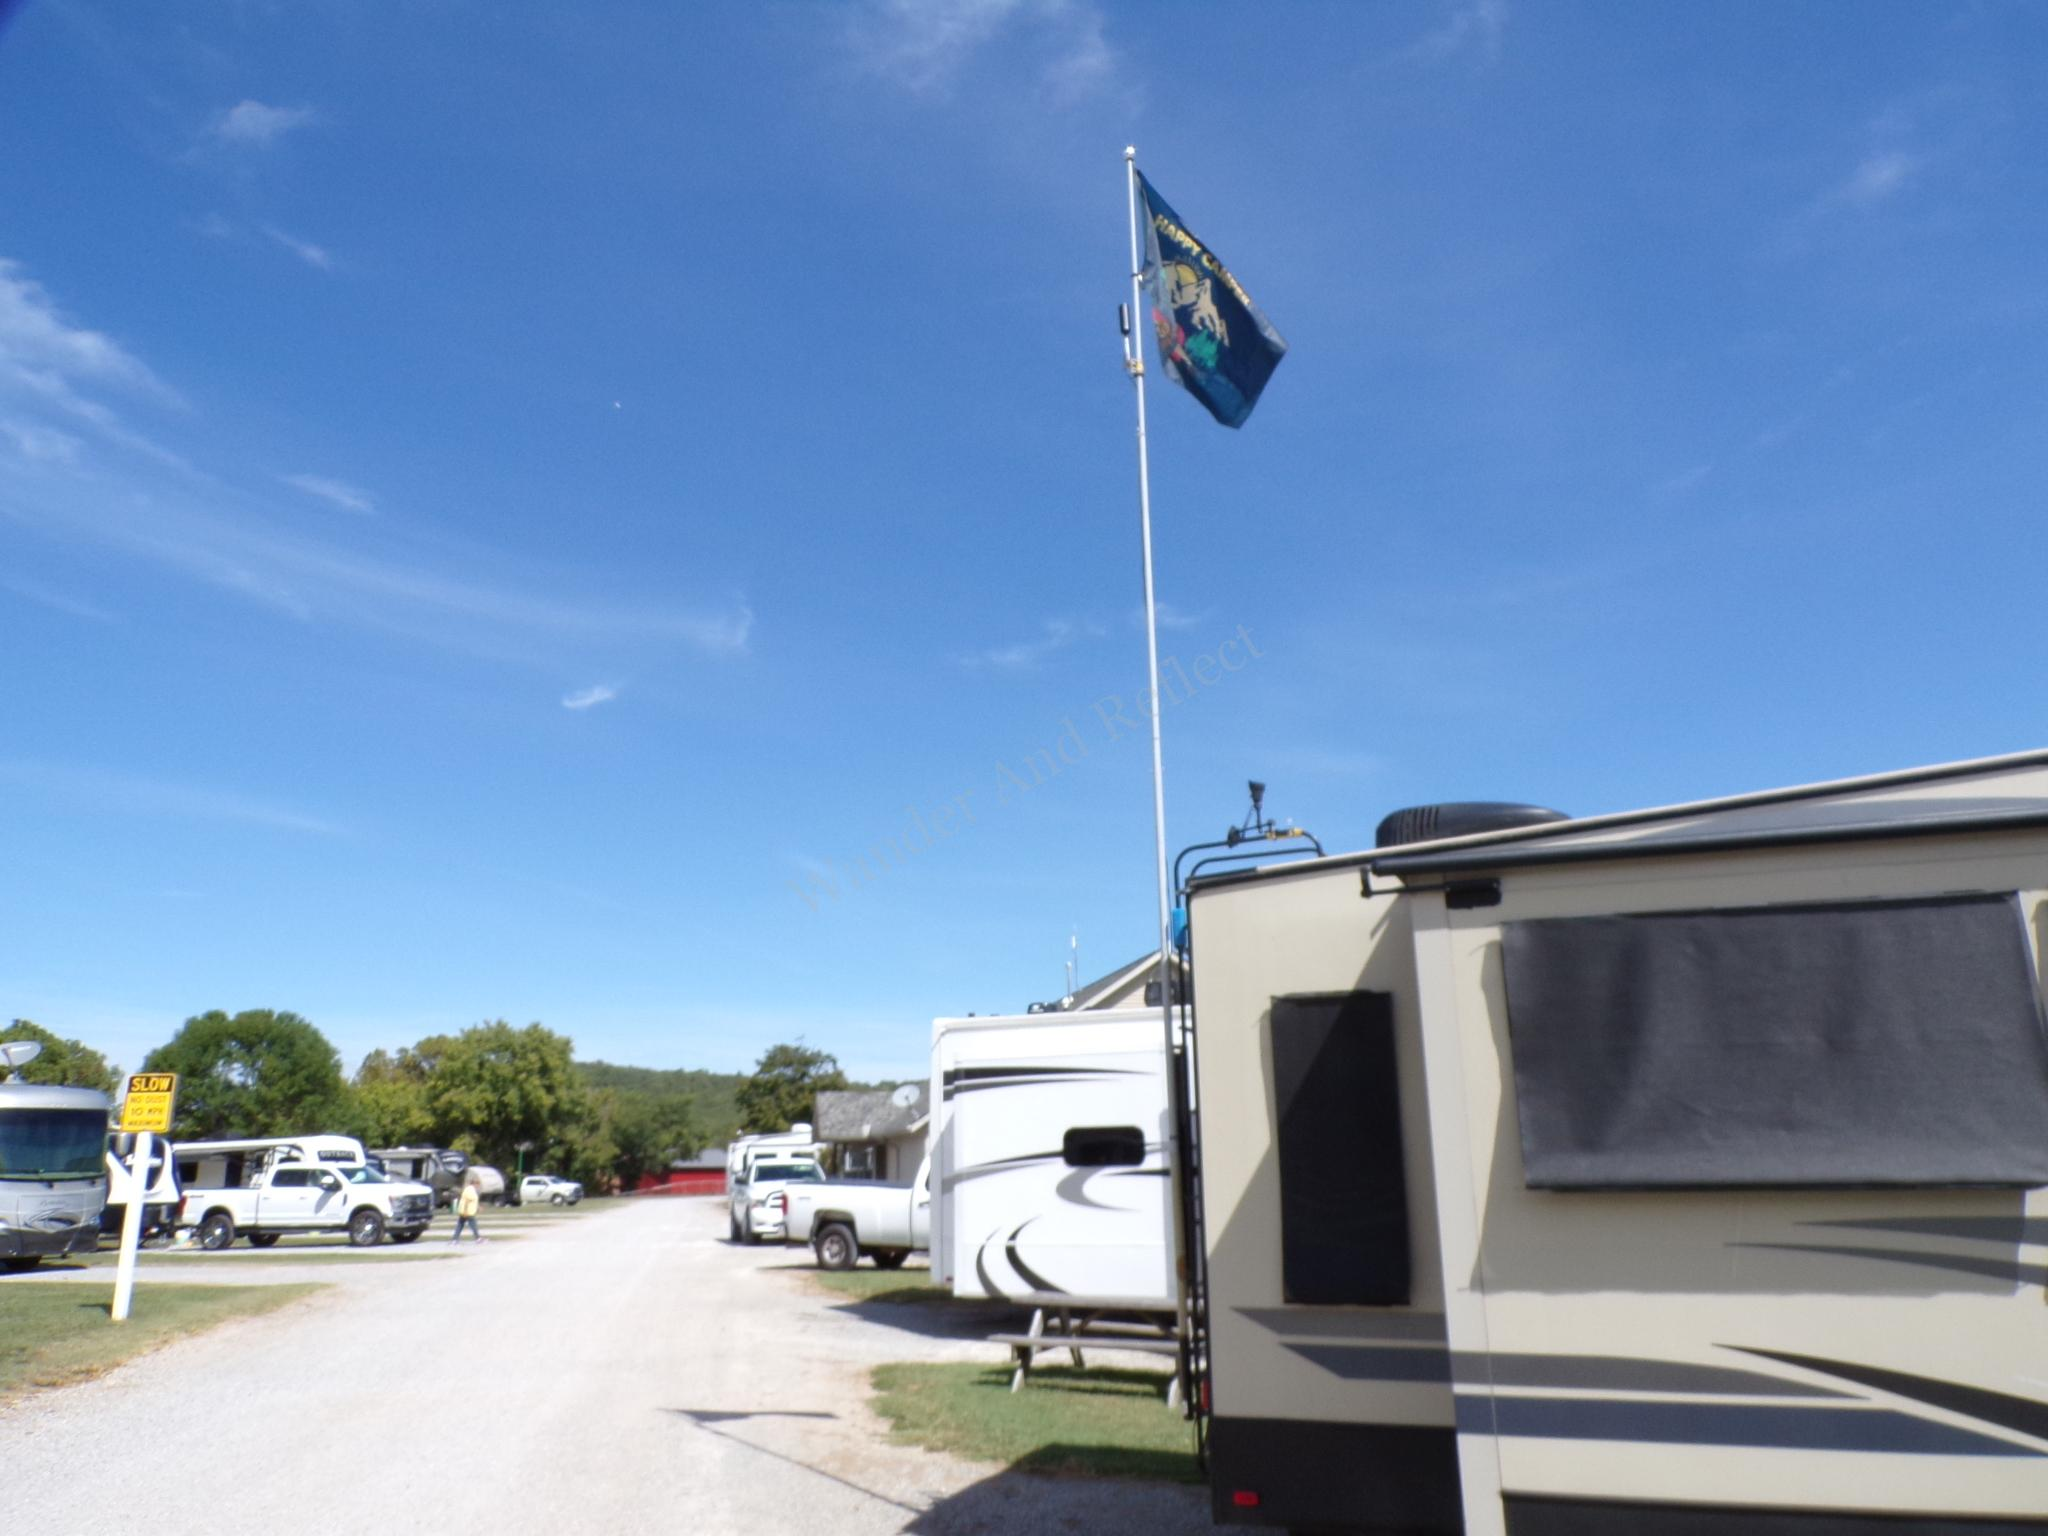 Cell phone internet signal booster on an RV flag pole.